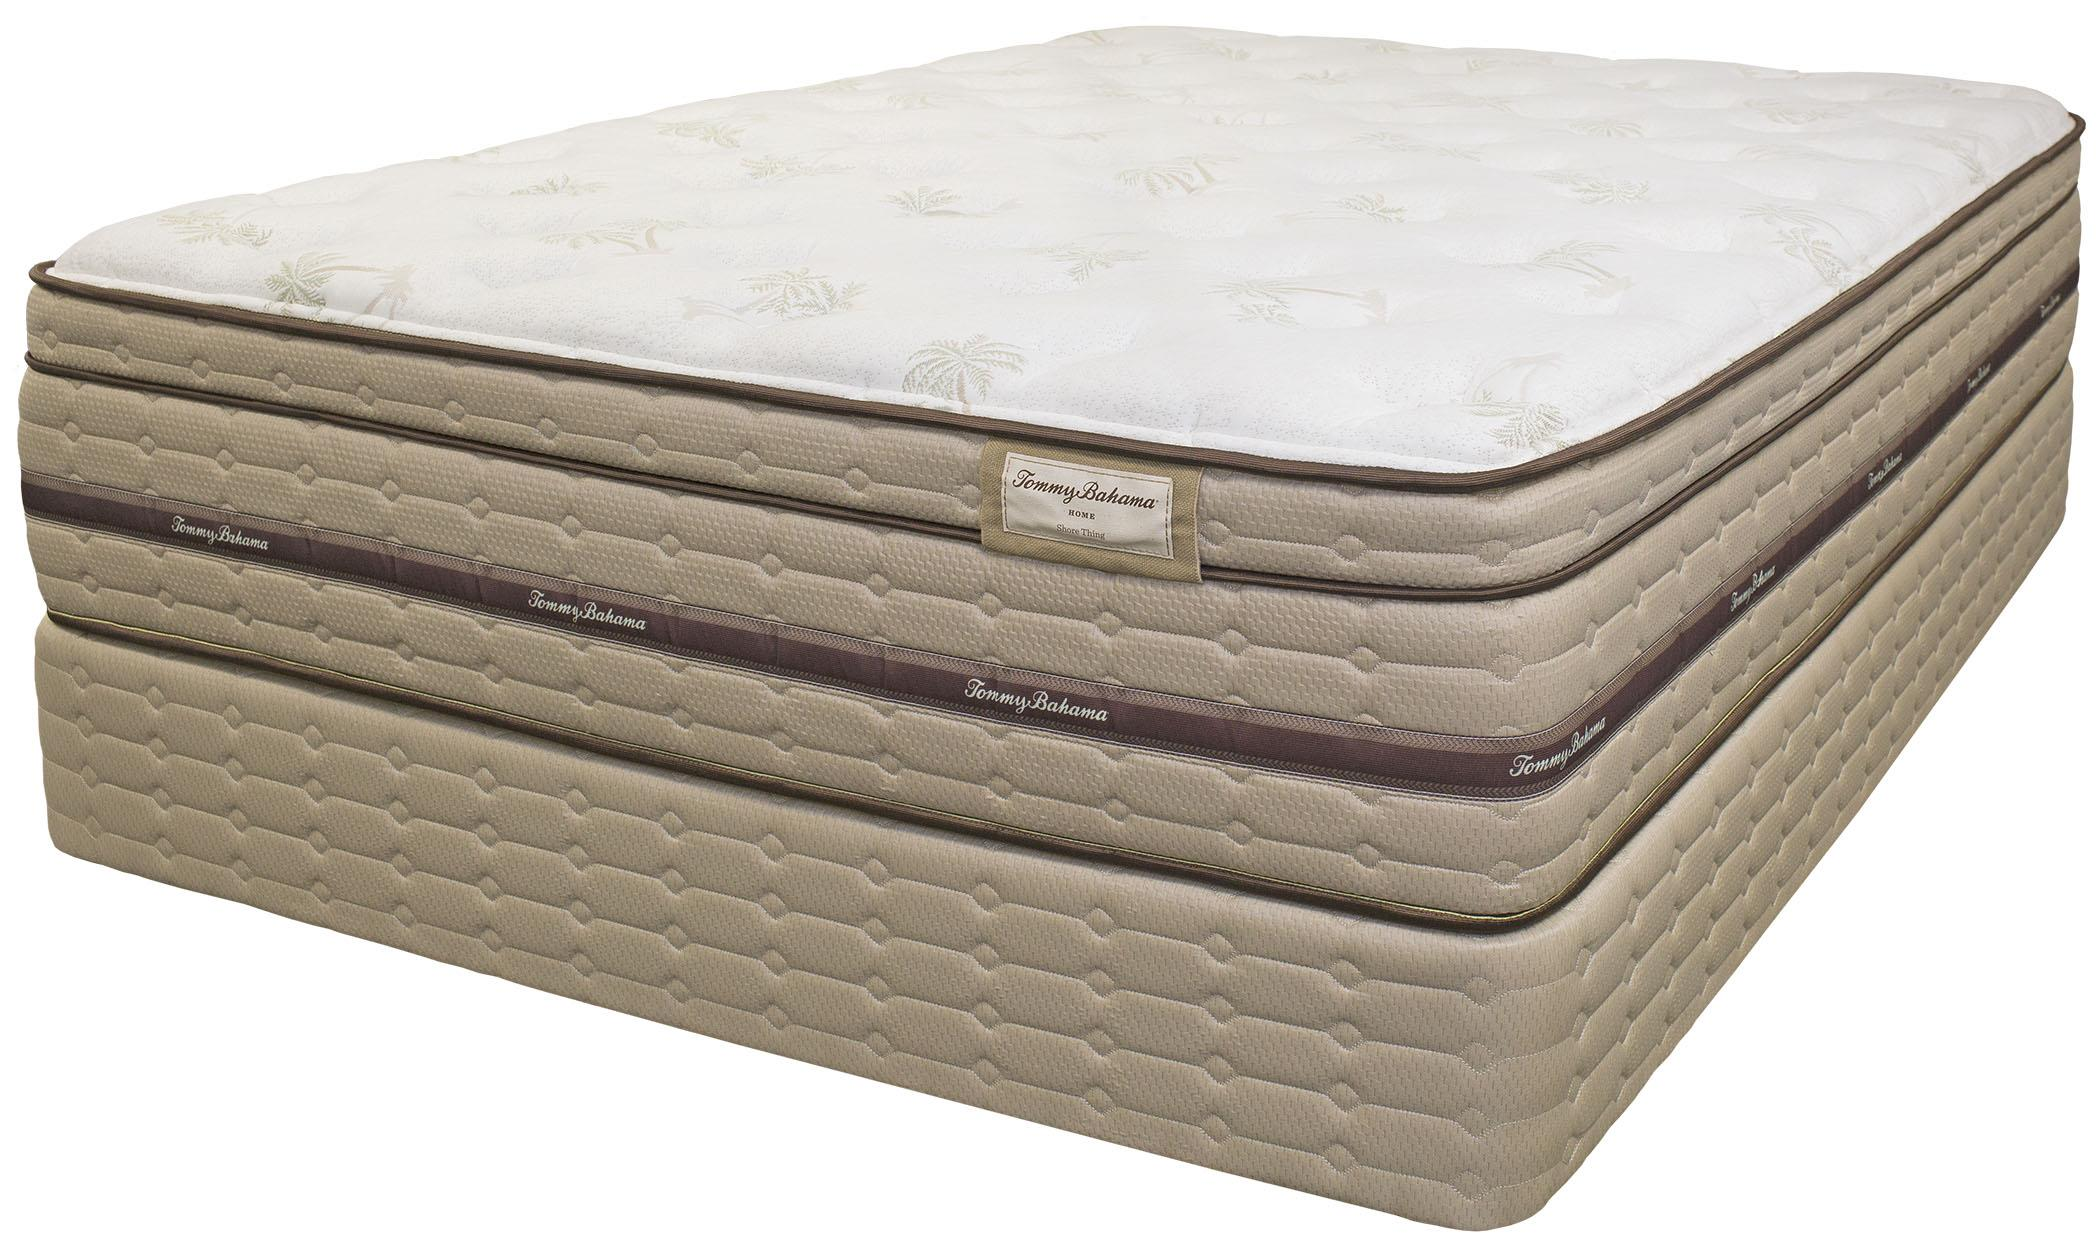 Tommy Bahama Mattress Tommy Bahama Mattress Twin XL Shore Thing PT Matt Set, Adjustable - Item Number: 6030-TXL+RContempo-TXL